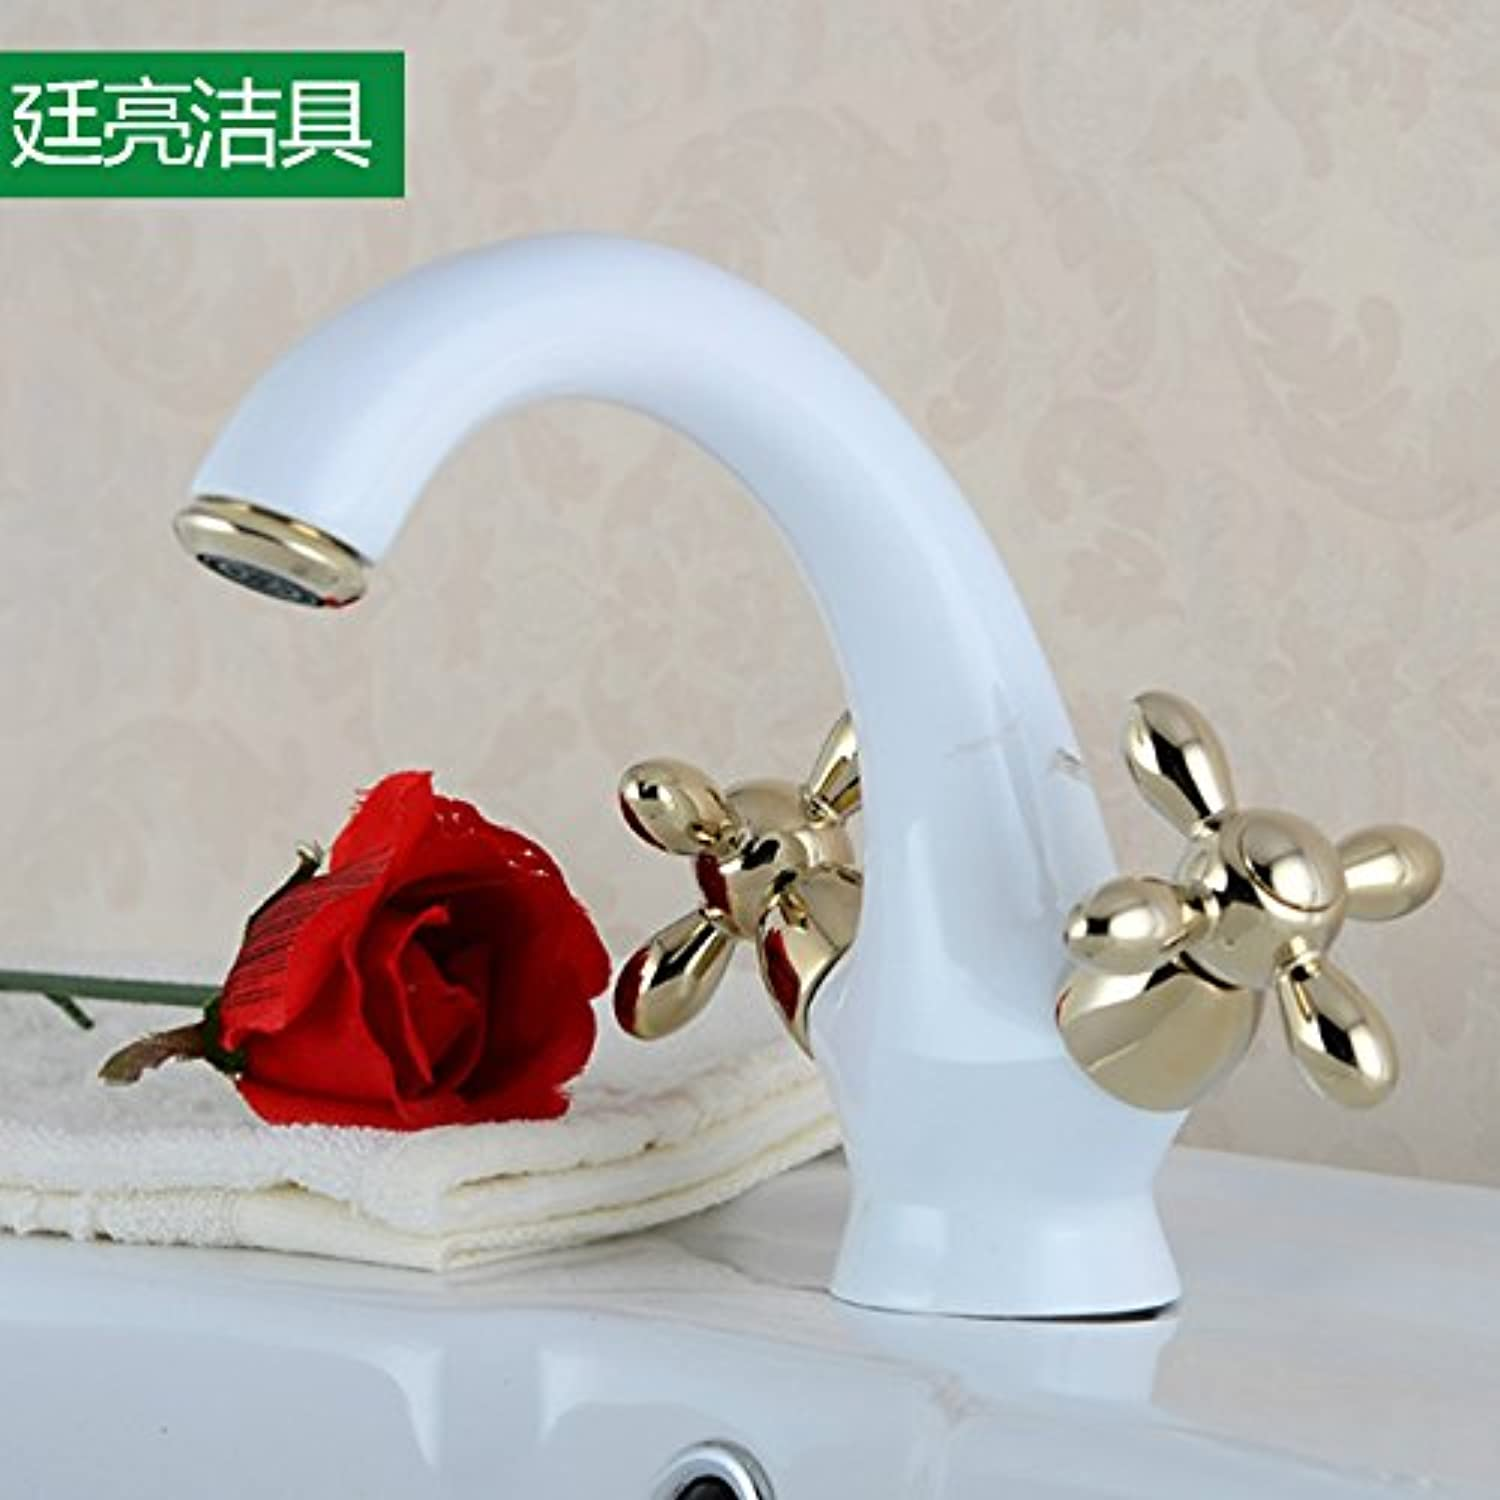 Ddlli Bathroom Taps for Kitchen Sink Tap Shower F6Cold Water Grippers Hands Turn Hot and Cold Water Roasting color-Wheel White gold Round Horns